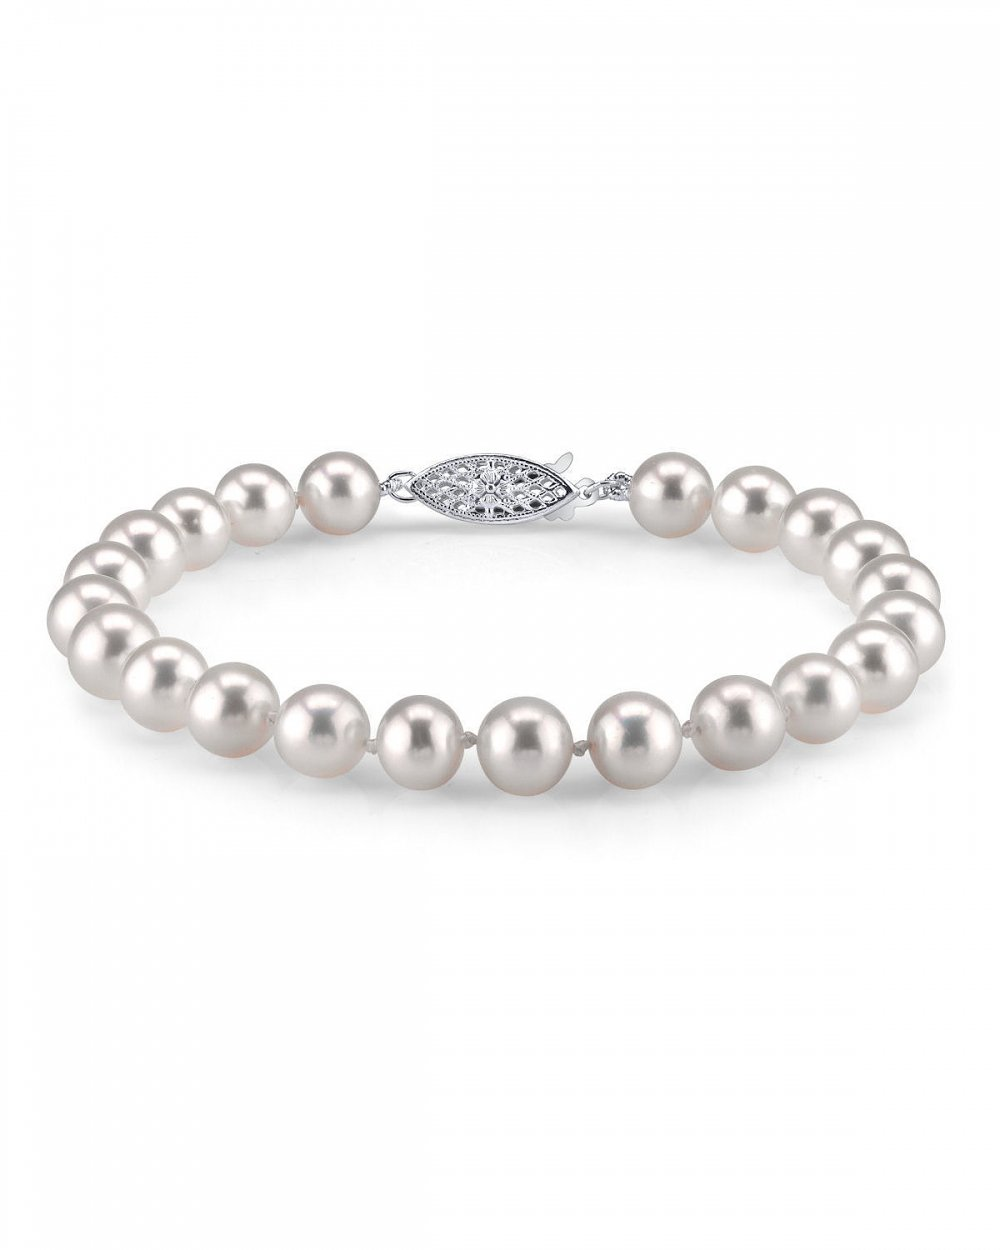 THE PEARL SOURCE 14K Gold 7-8mm AAAA Quality Round White Freshwater Cultured Pearl Bracelet for Women by The Pearl Source